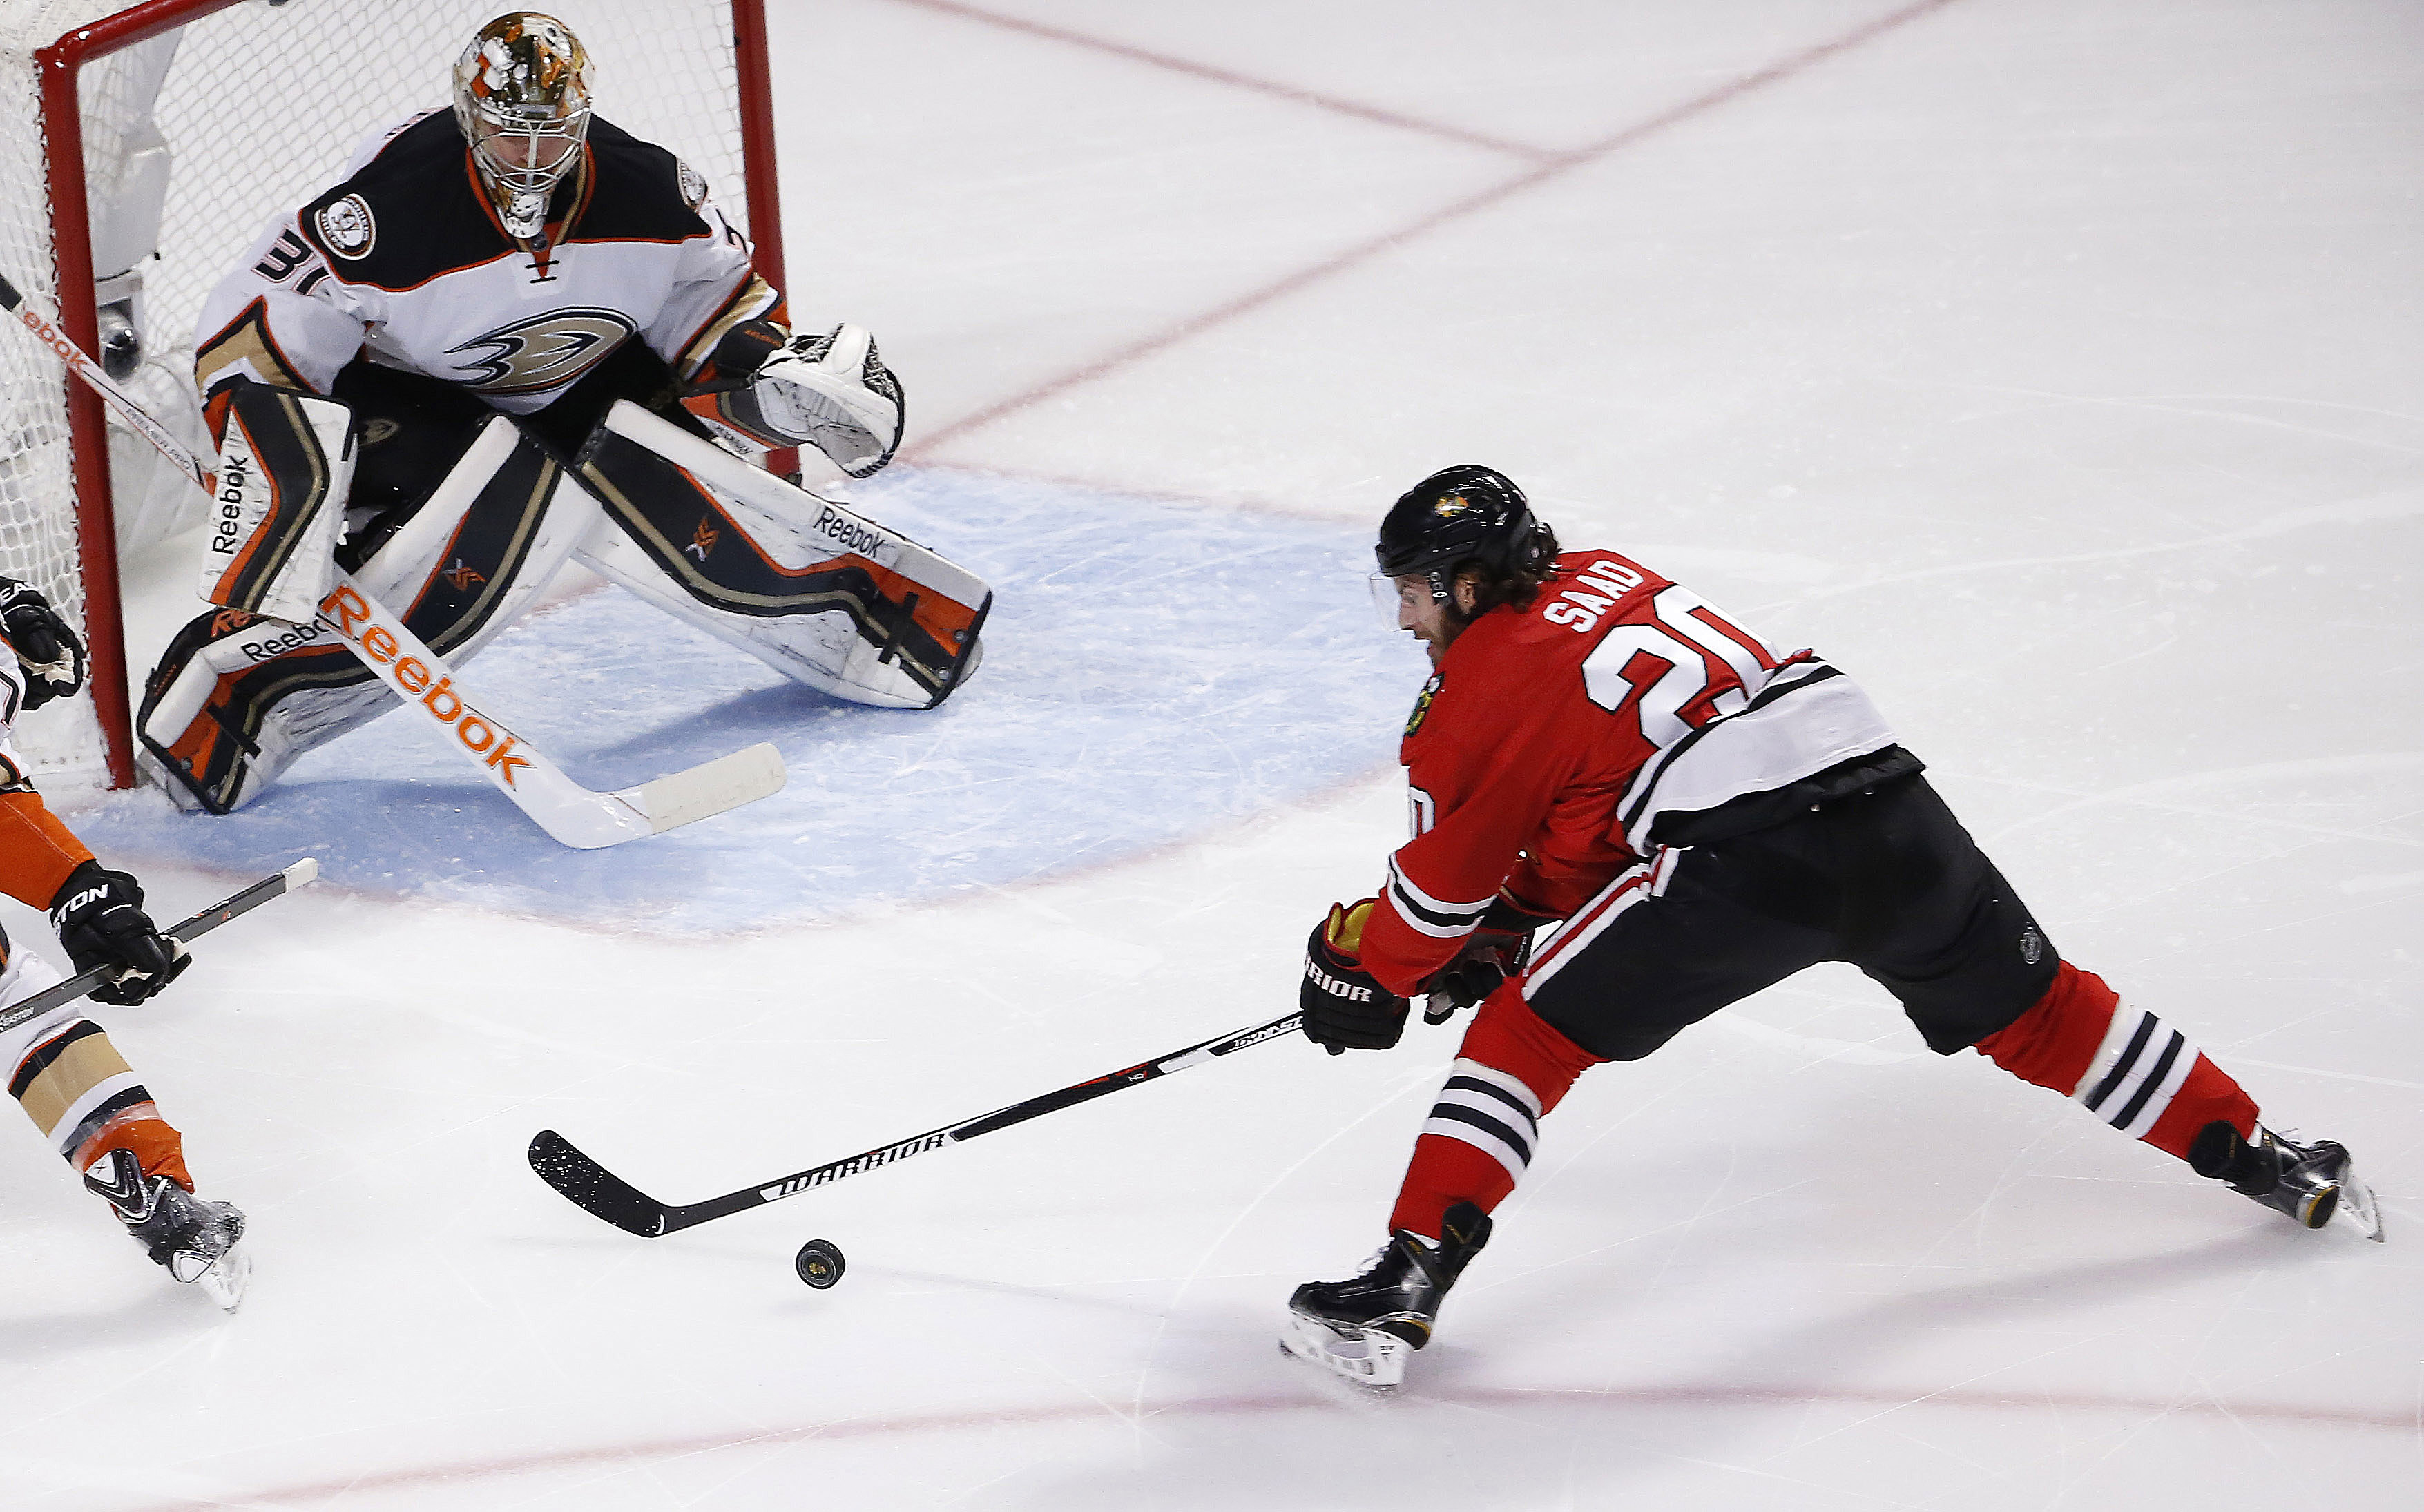 Chicago Blackhawks left wing Brandon Saad (20) shoots on Anaheim Ducks goalie Frederik Andersen (31) during the first period in Game 6 of the Western Conference finals of the NHL hockey Stanley Cup playoffs, Wednesday, May 27, 2015, in Chicago. (AP Photo/